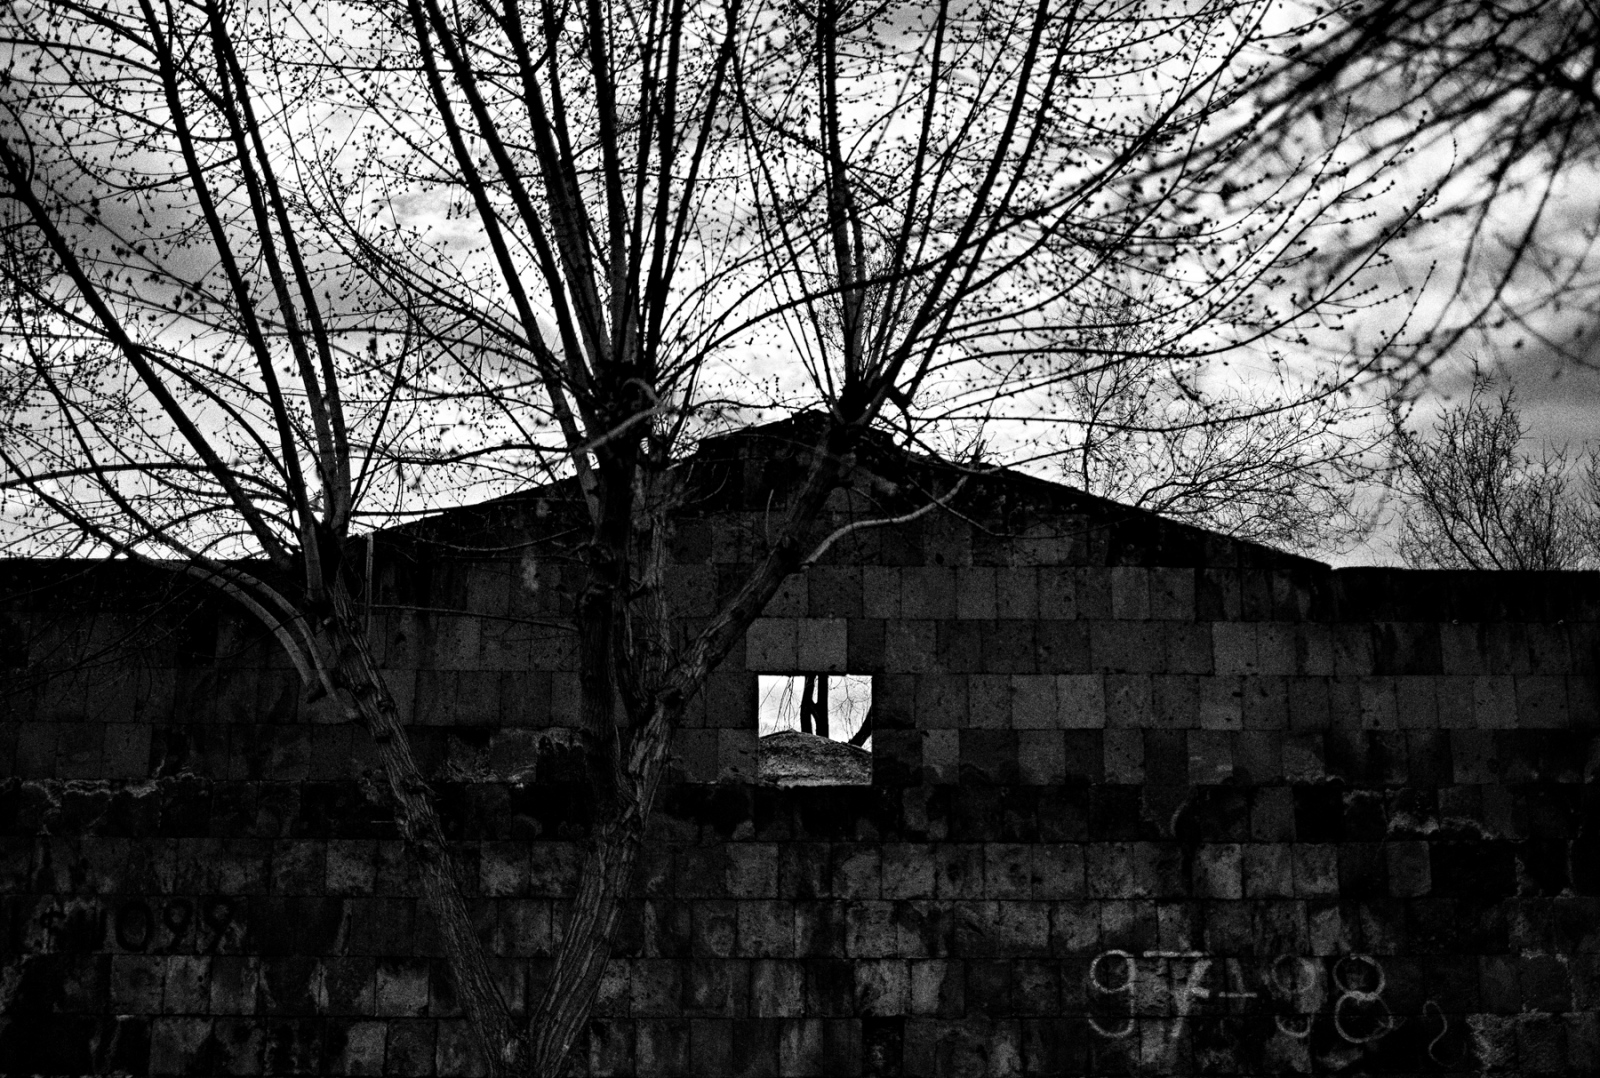 The ruins of a building near the Nor Nork Military Commissariat in the Nor Nork District of the Capital City Yerevan, Armenia.